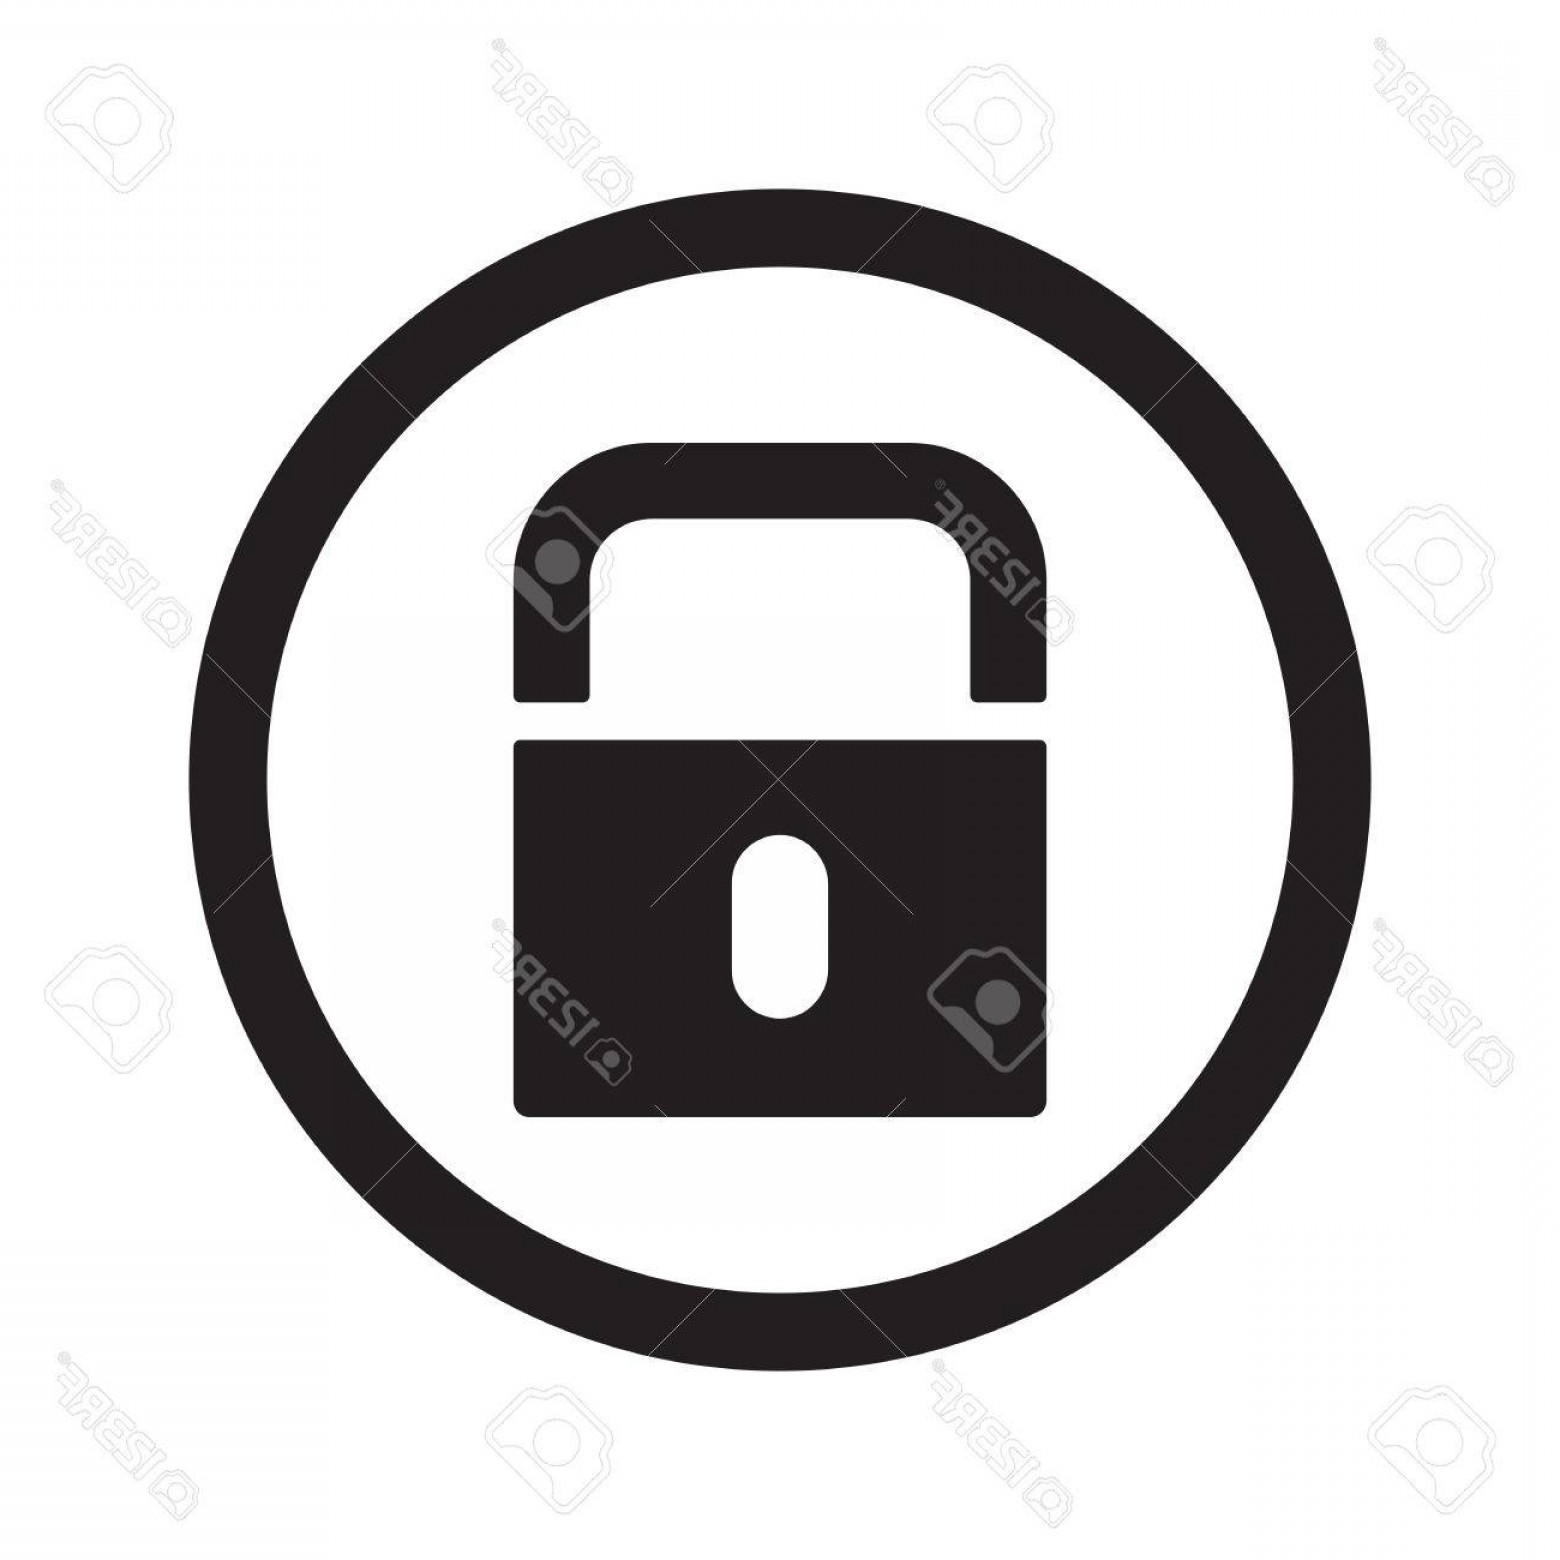 Lock Unlock Icon Vector: Photostock Vector Flat Black Lock Web Icon In Circle On White Background